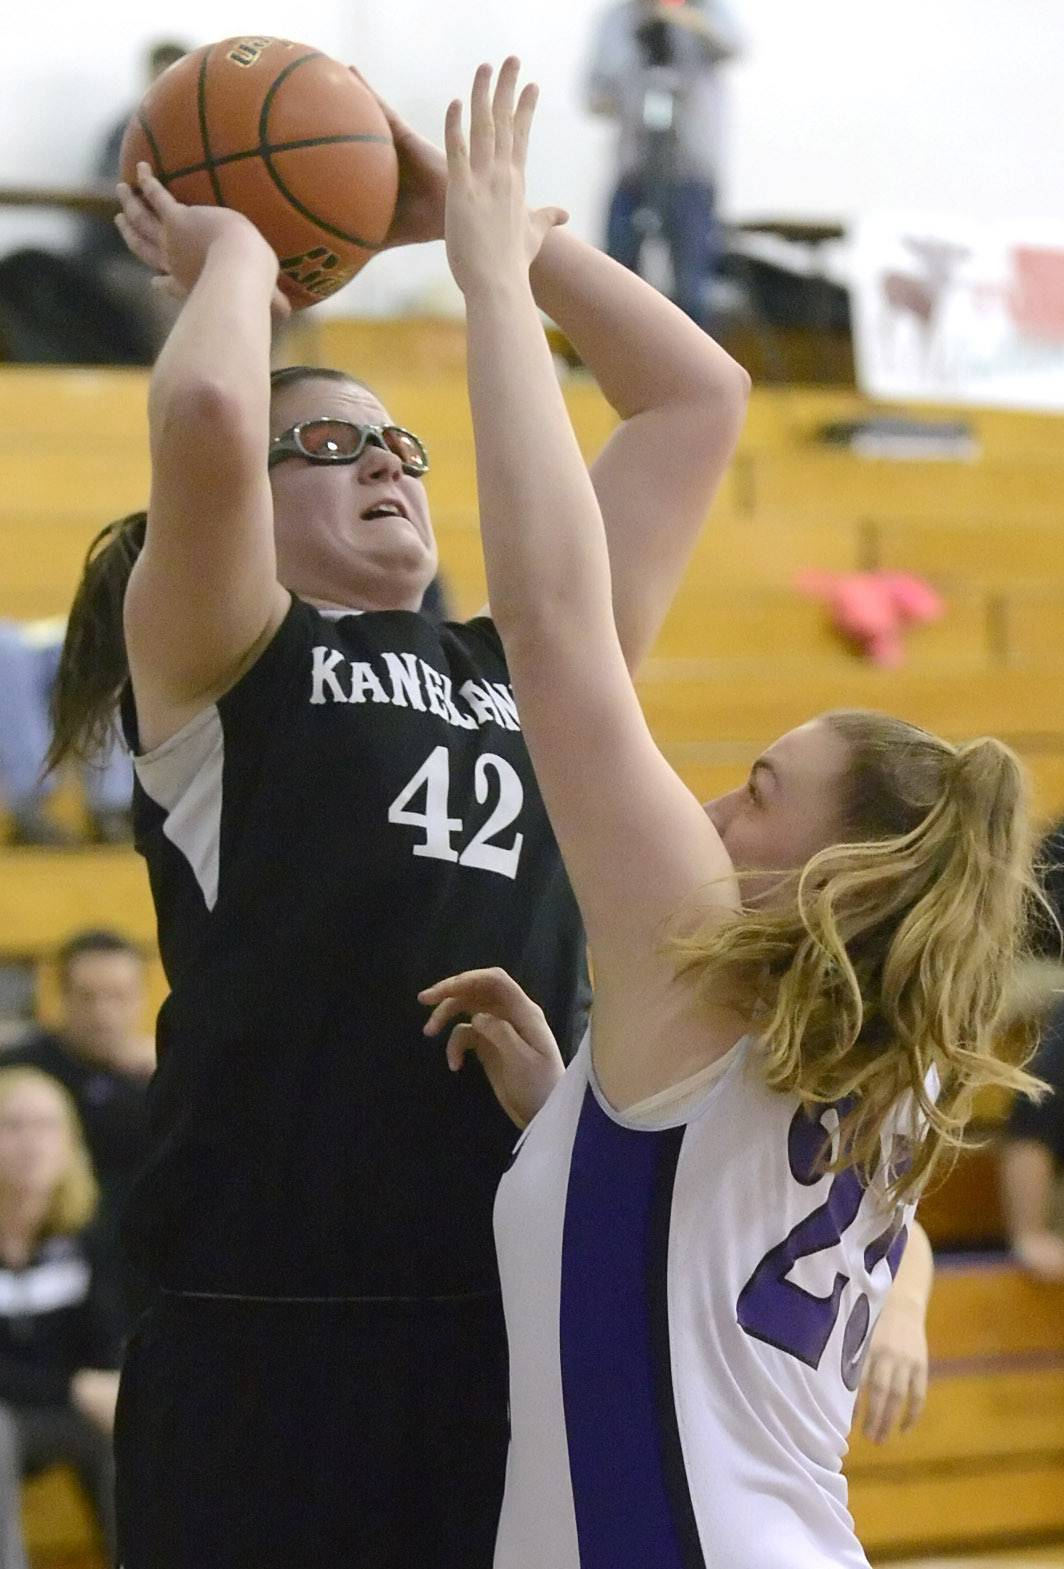 Kaneland's Kelly Wallner shoots over a block by Plano's Hayley Beck in the first quarter of the Class 3A regional meet on Wednesday, February 19.